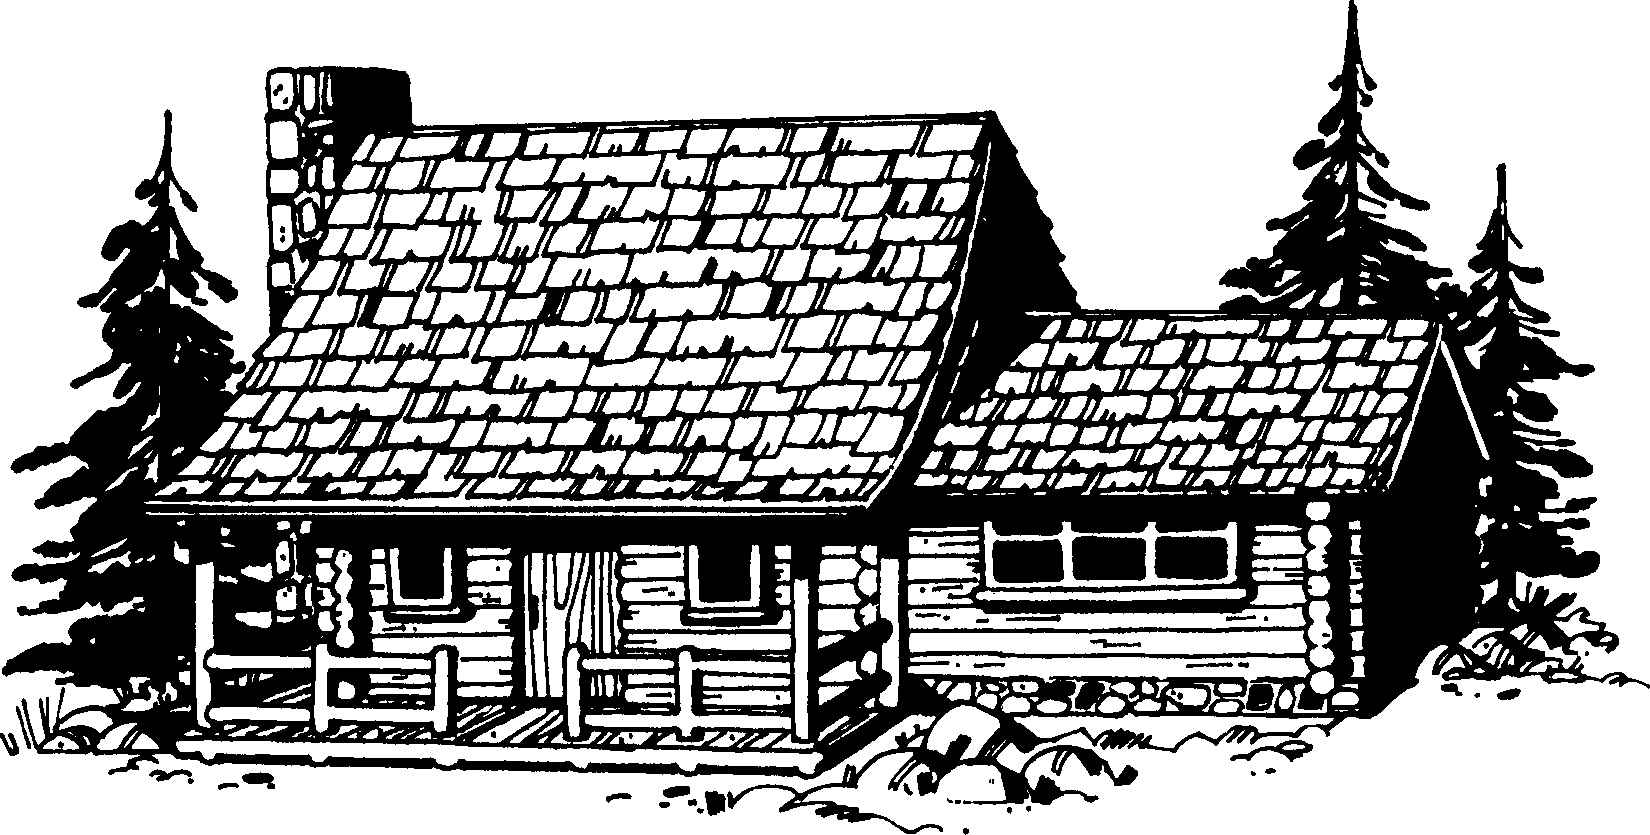 Log Cabin Black And White Free Download In 2021 White Cabin Black And White Log Cabin